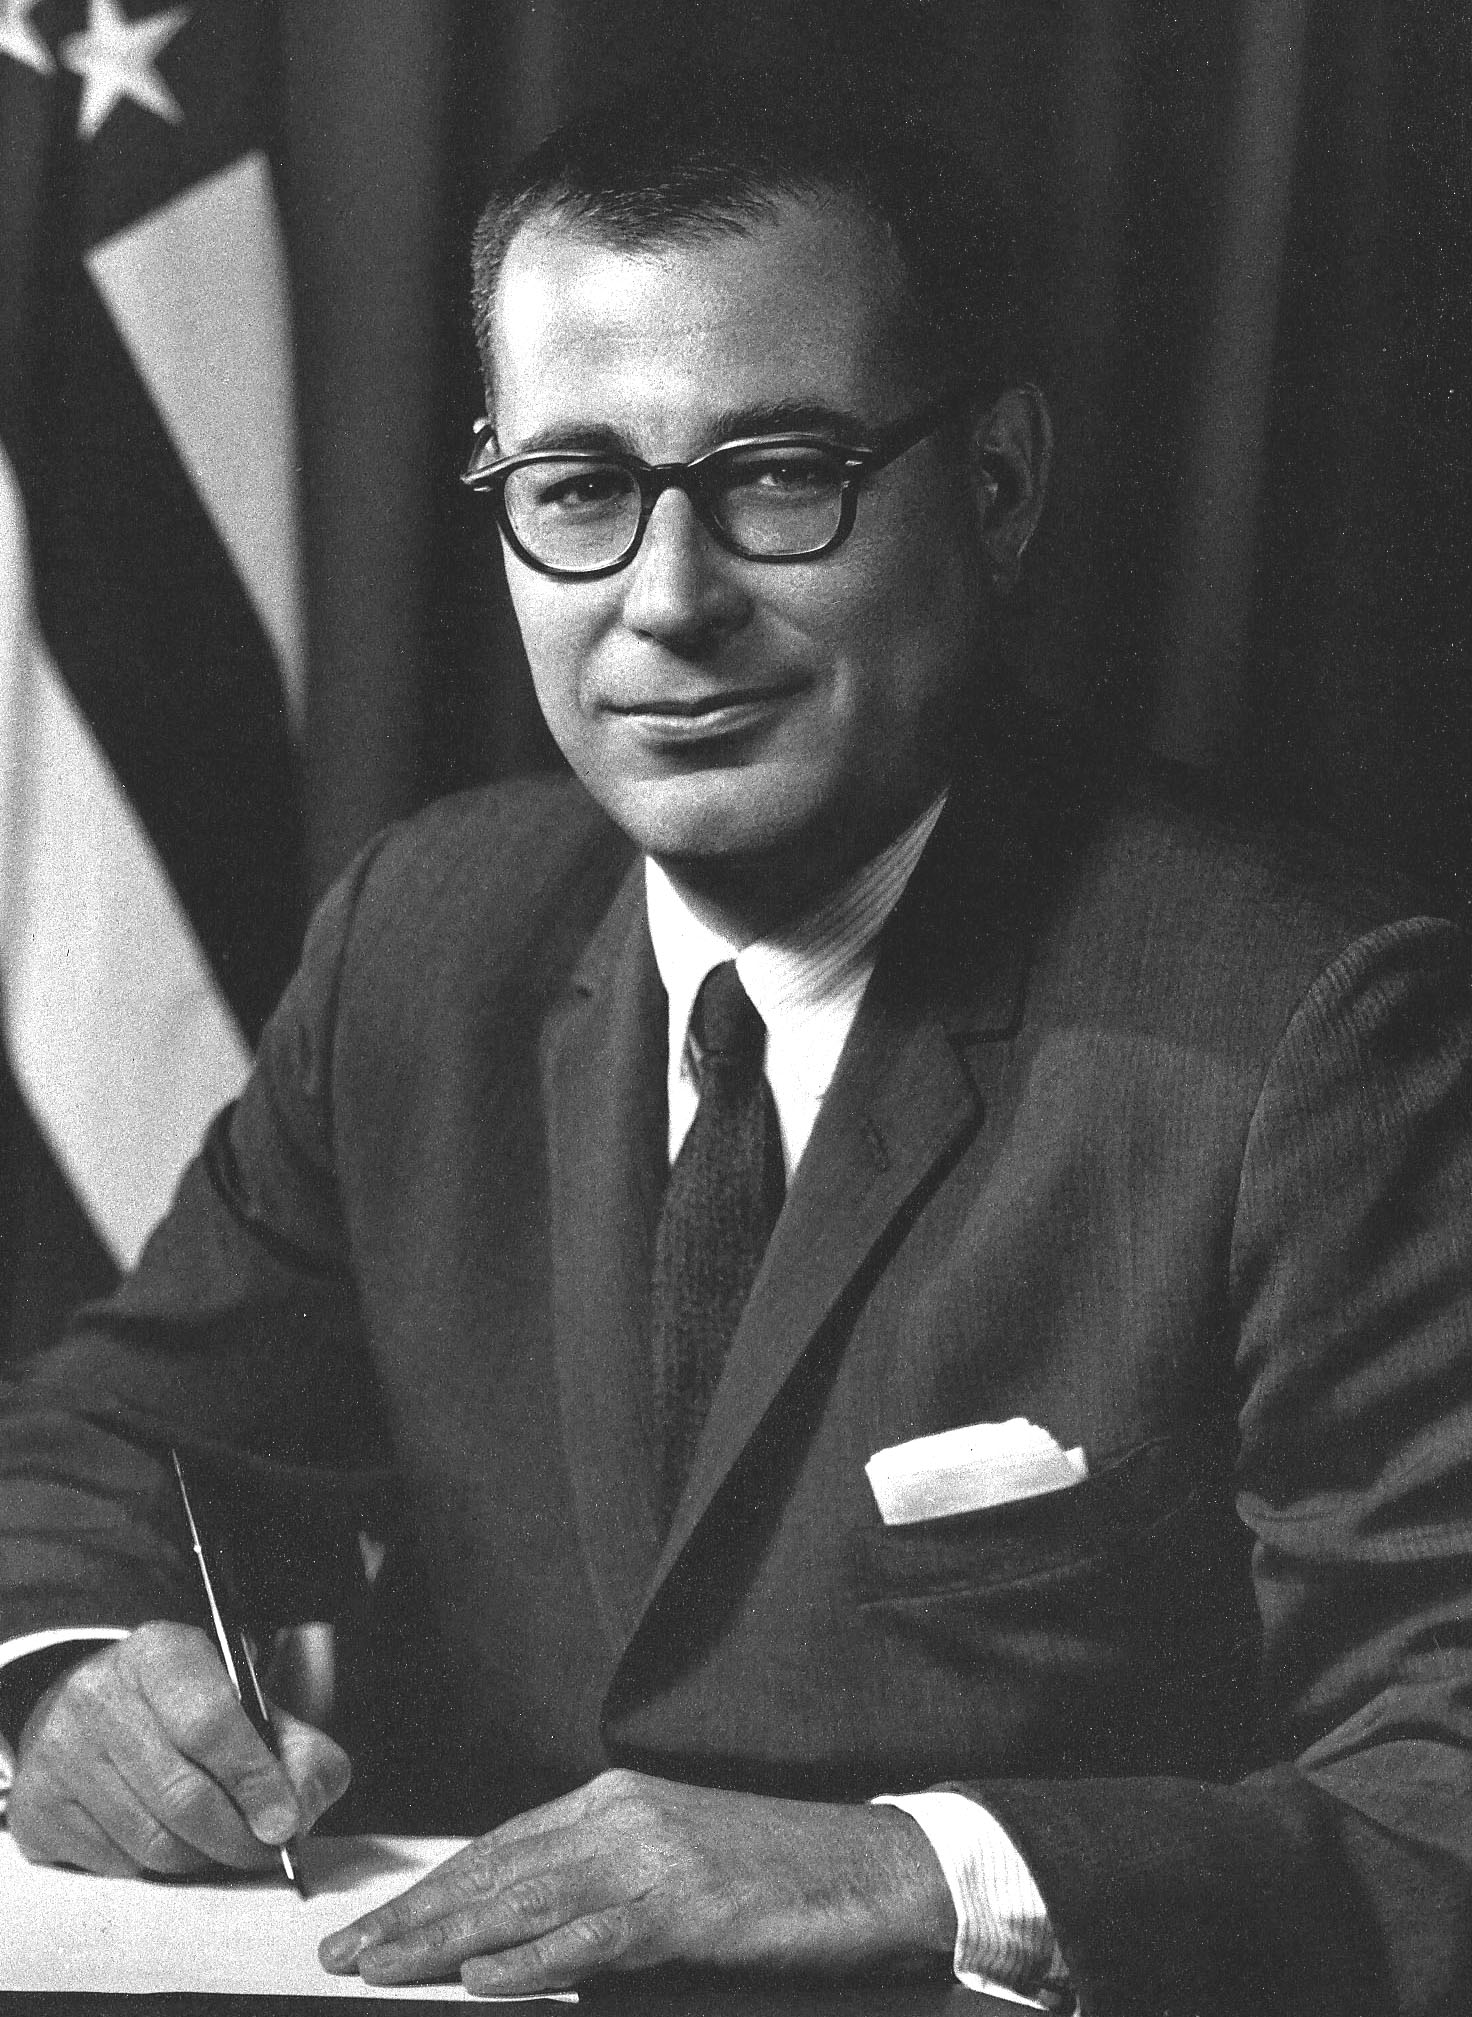 Secretary of Defense Harold Brown